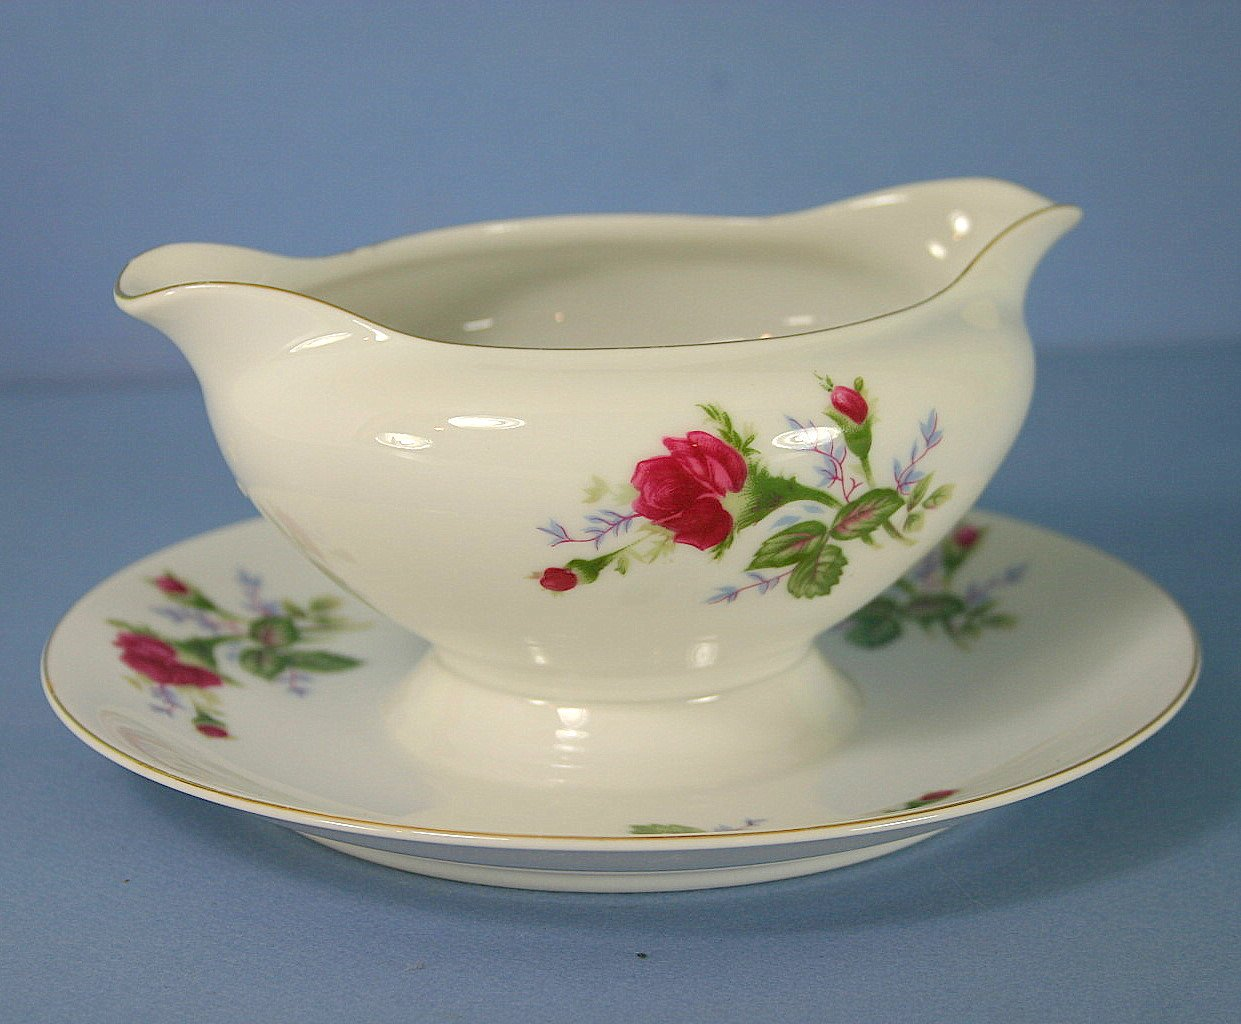 Empress (Japan) Pattern No. 1000 Gravy Boat with Attached Underplate